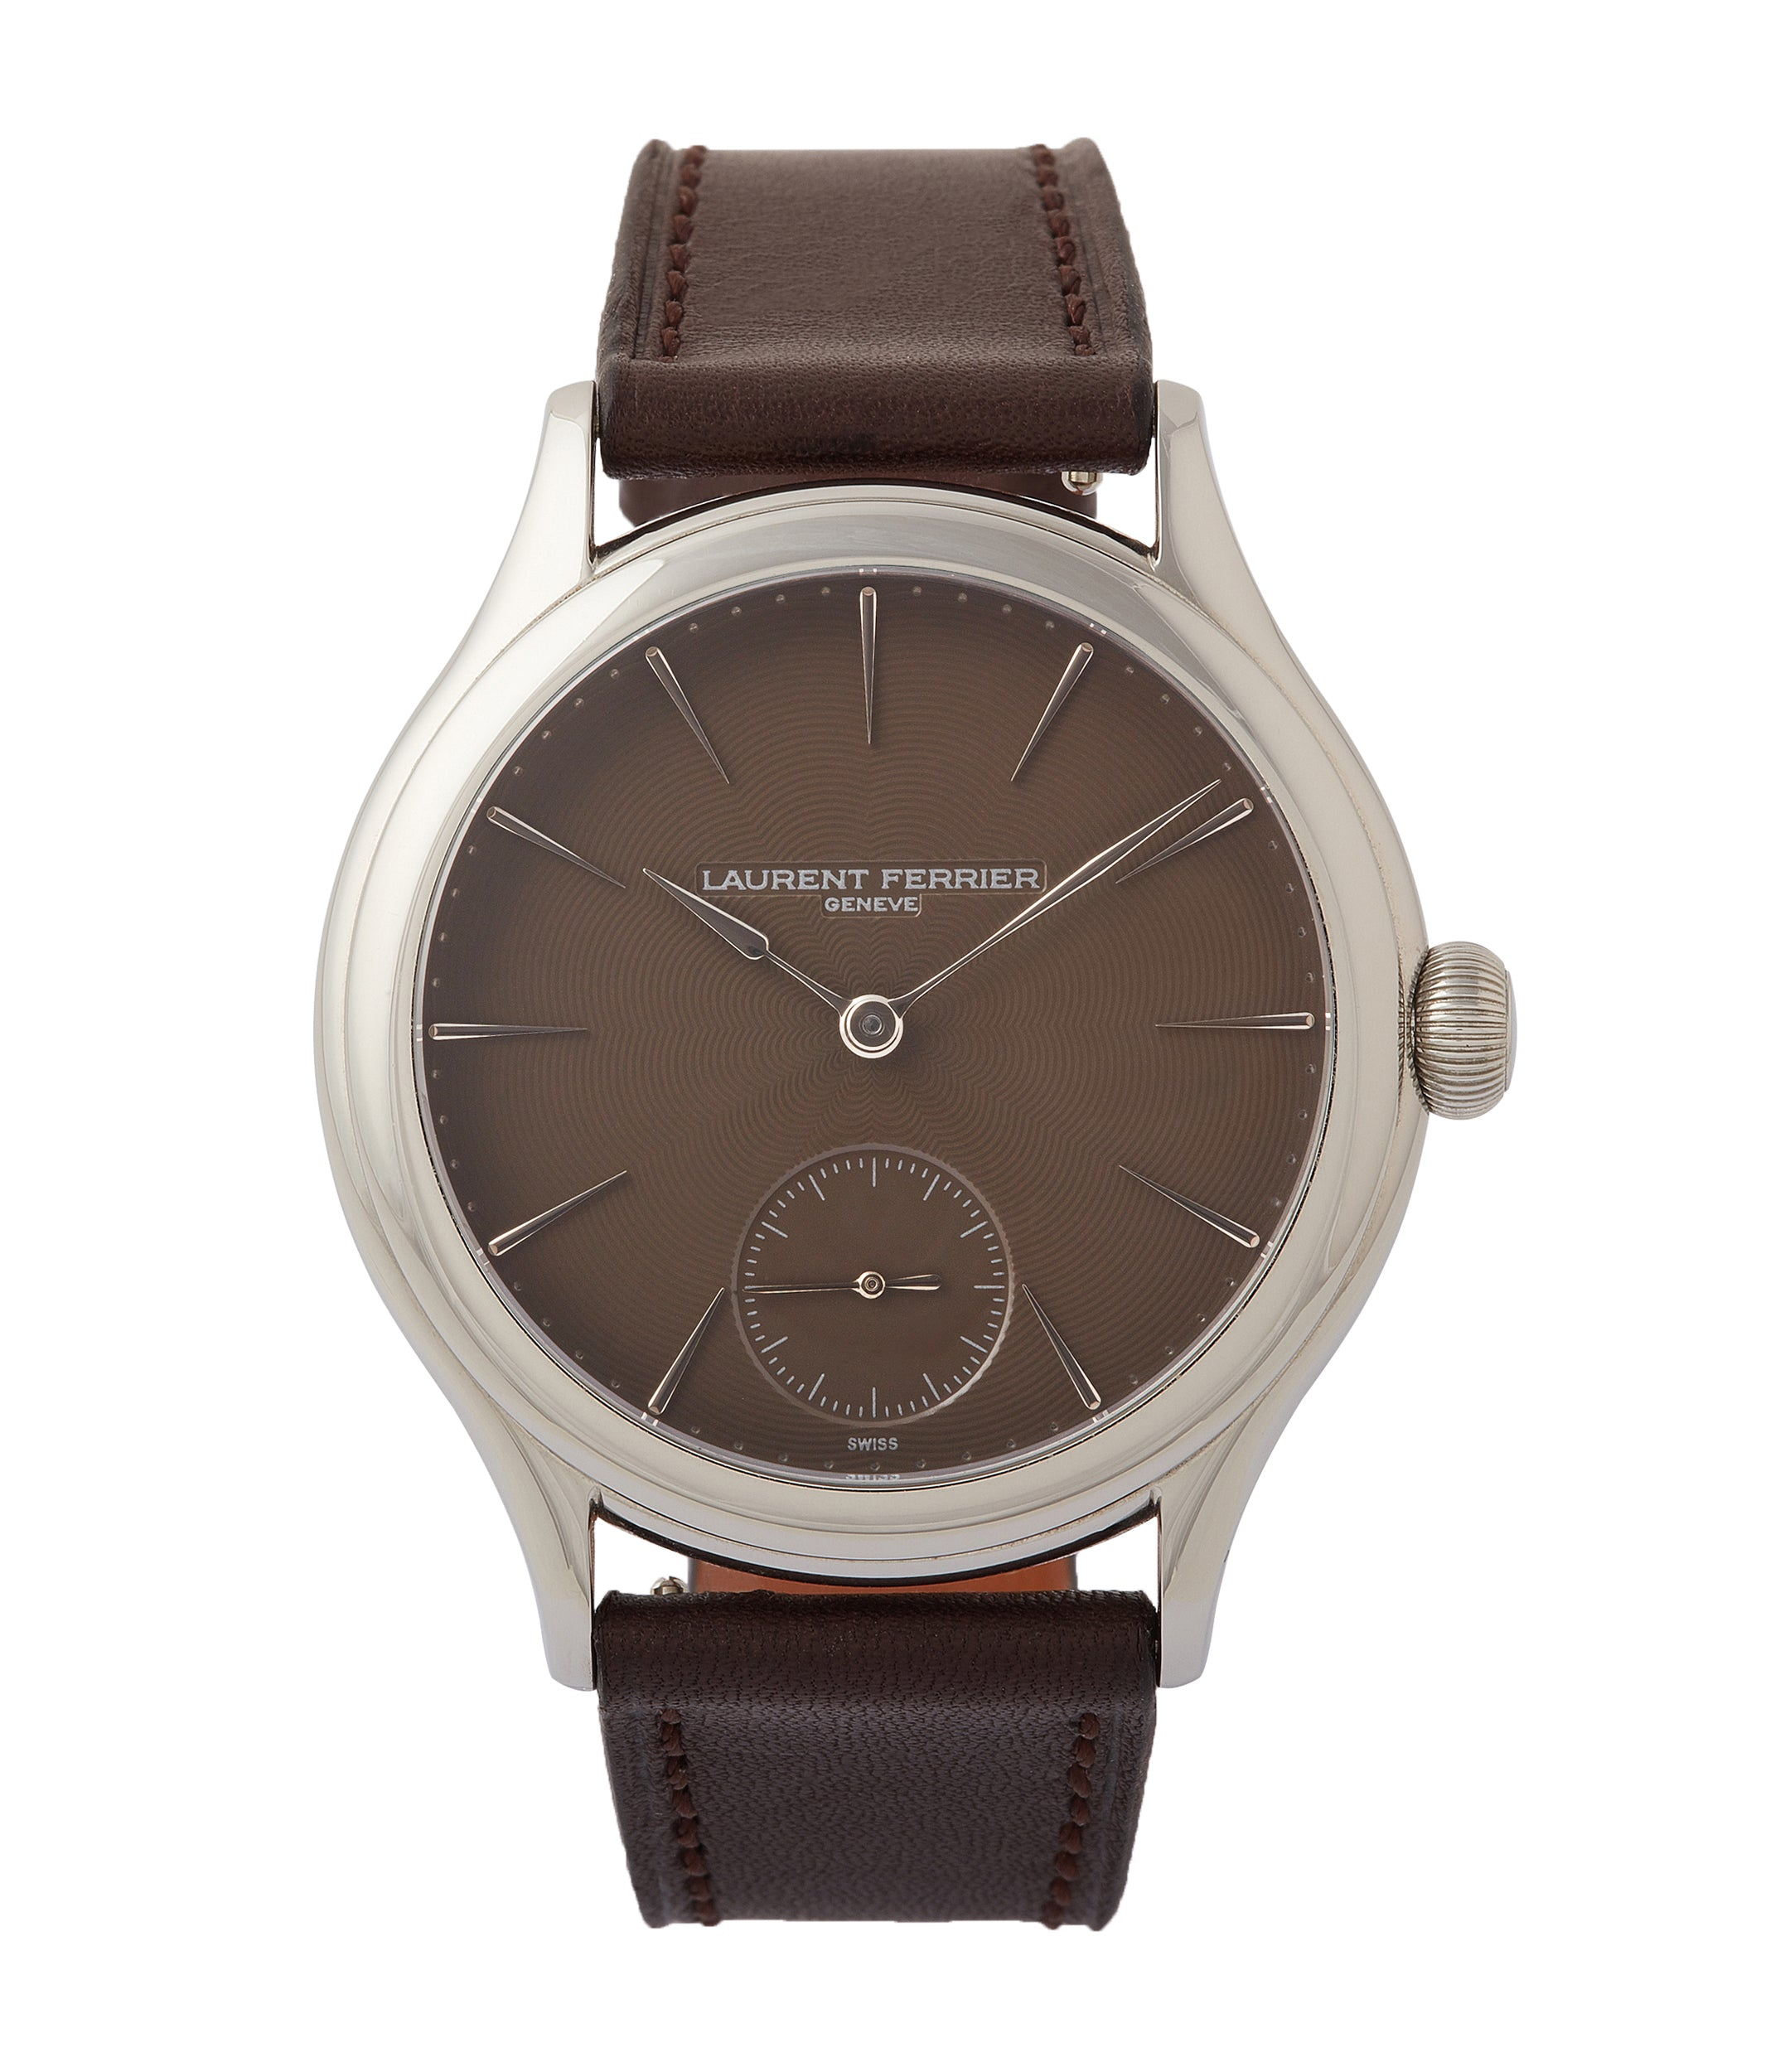 "buy Prototype Laurent Ferrier Galet Micro-rotor LF 229.01 ""Only Watch 2011"" steel watch brown dial for sale online at A Collected Man London UK approved seller of independent watchmakers"